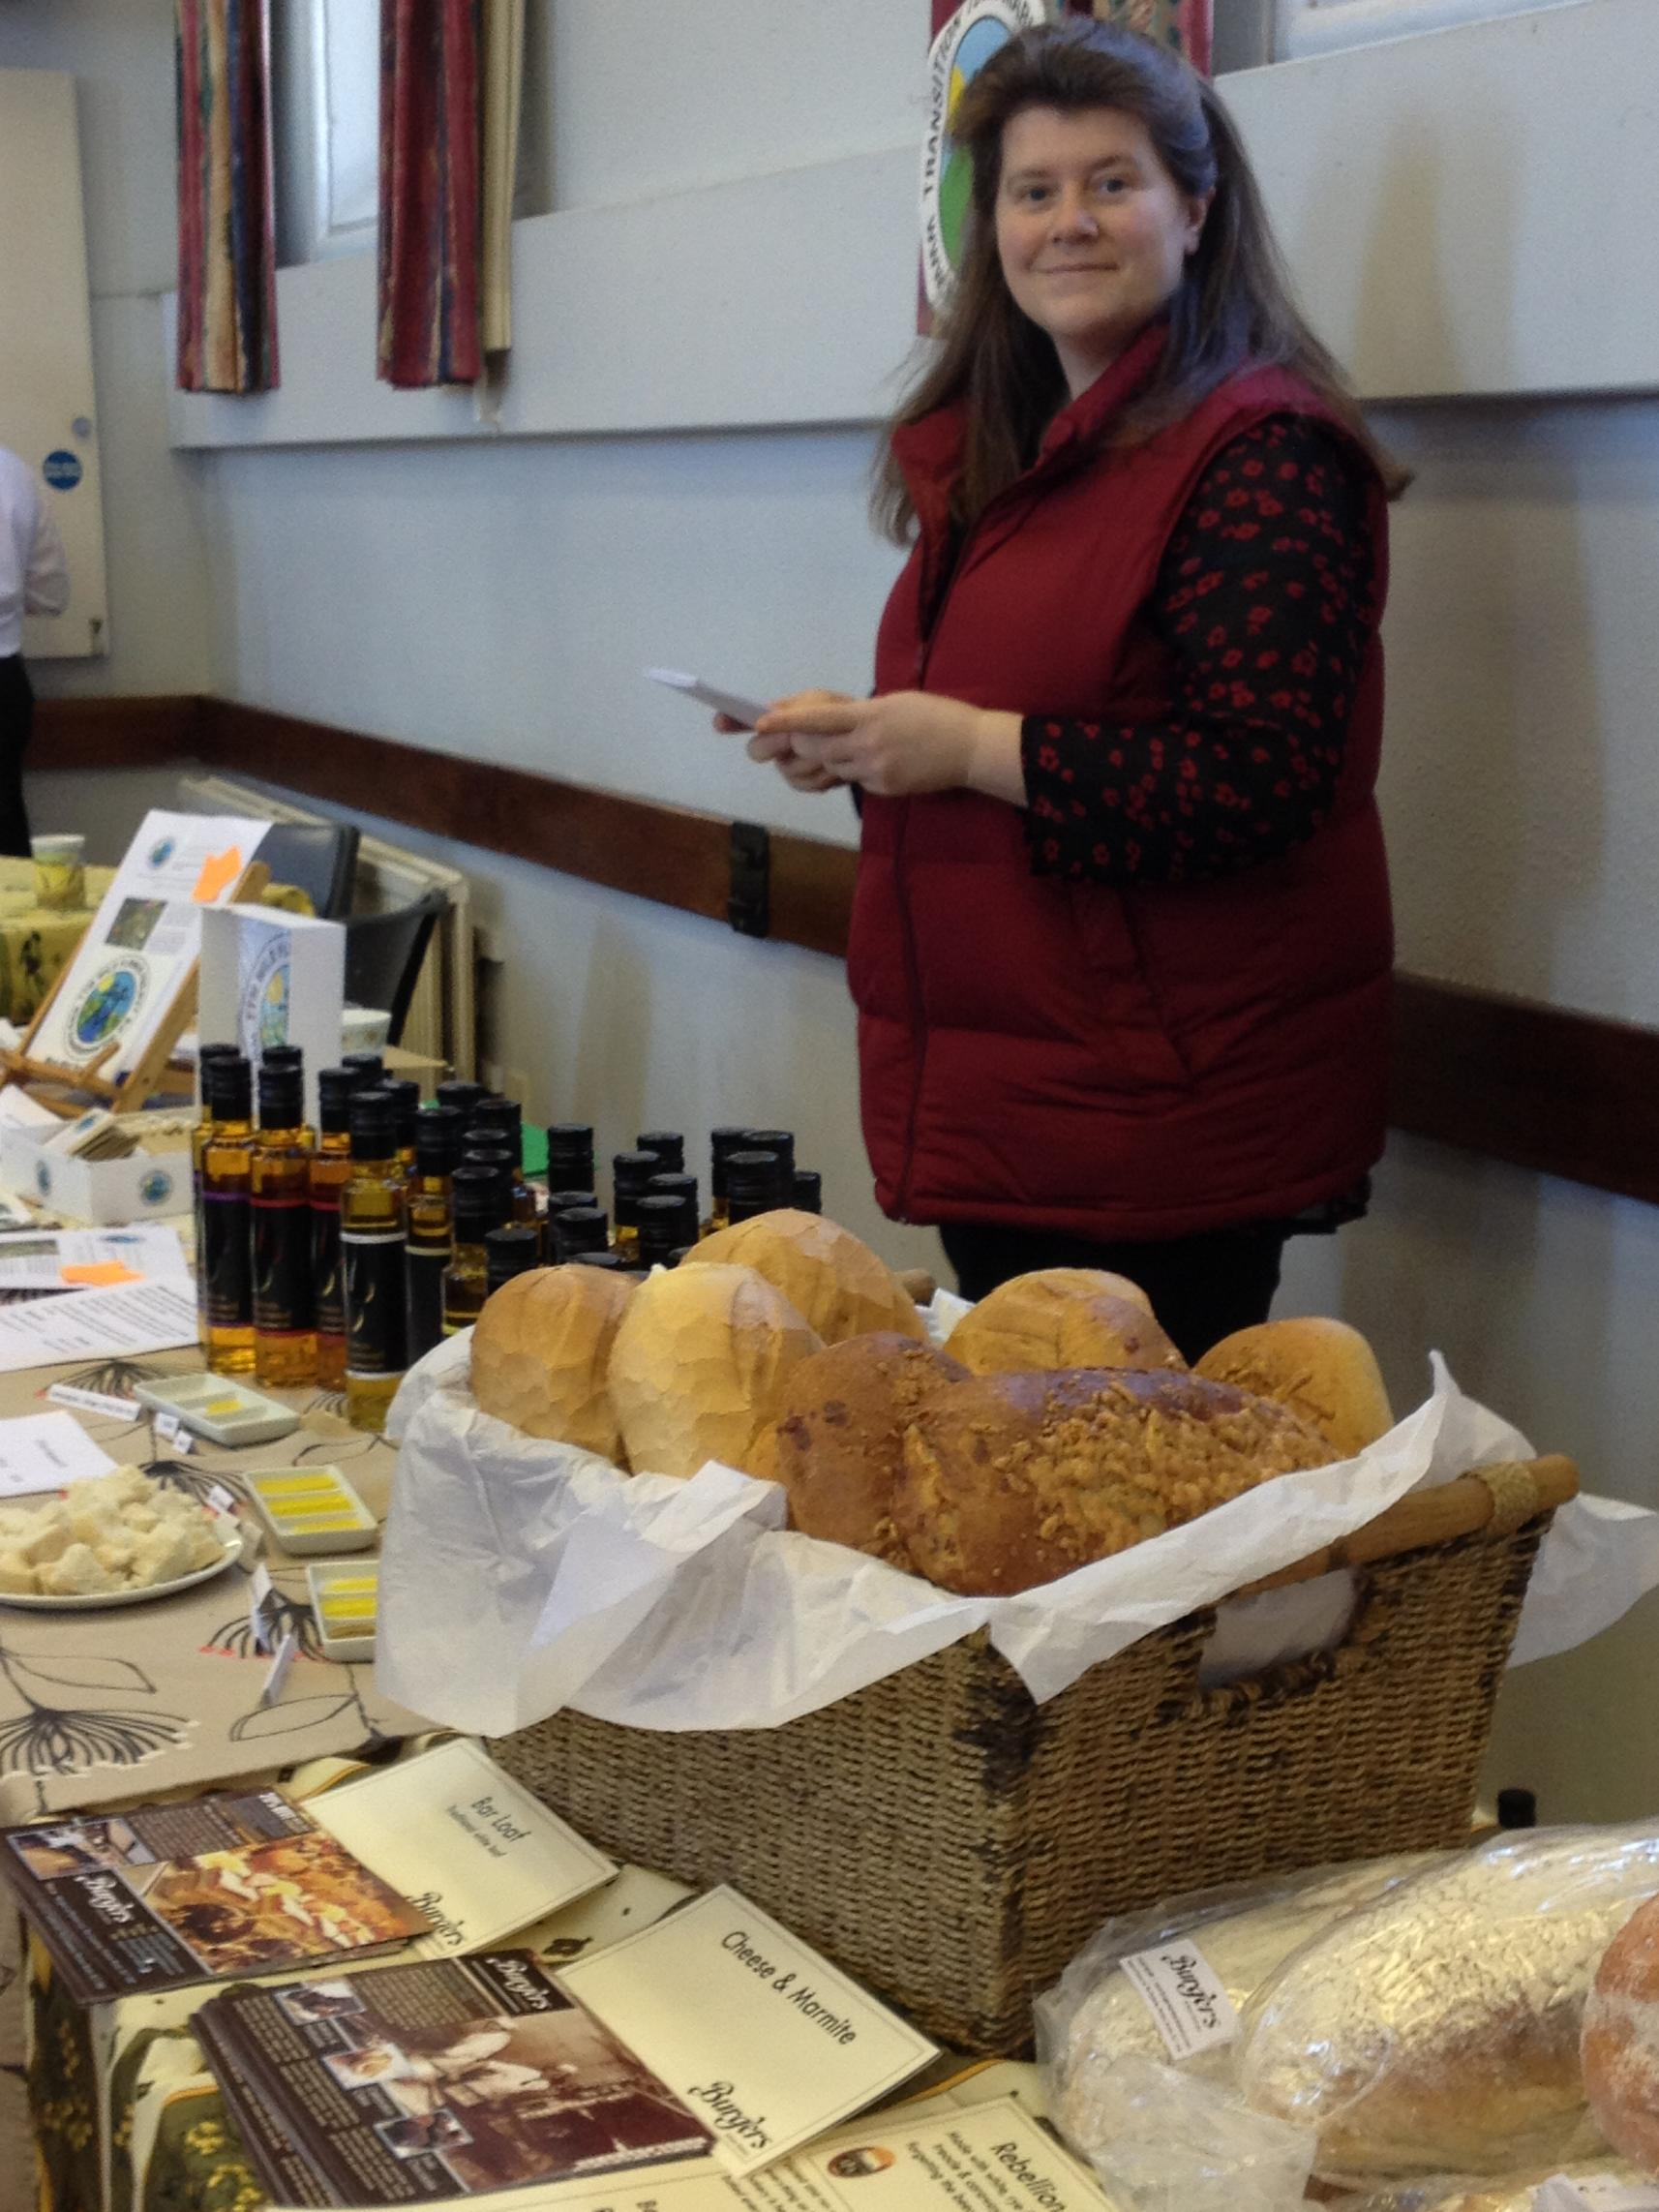 Thriving community market branches out with skills workshops